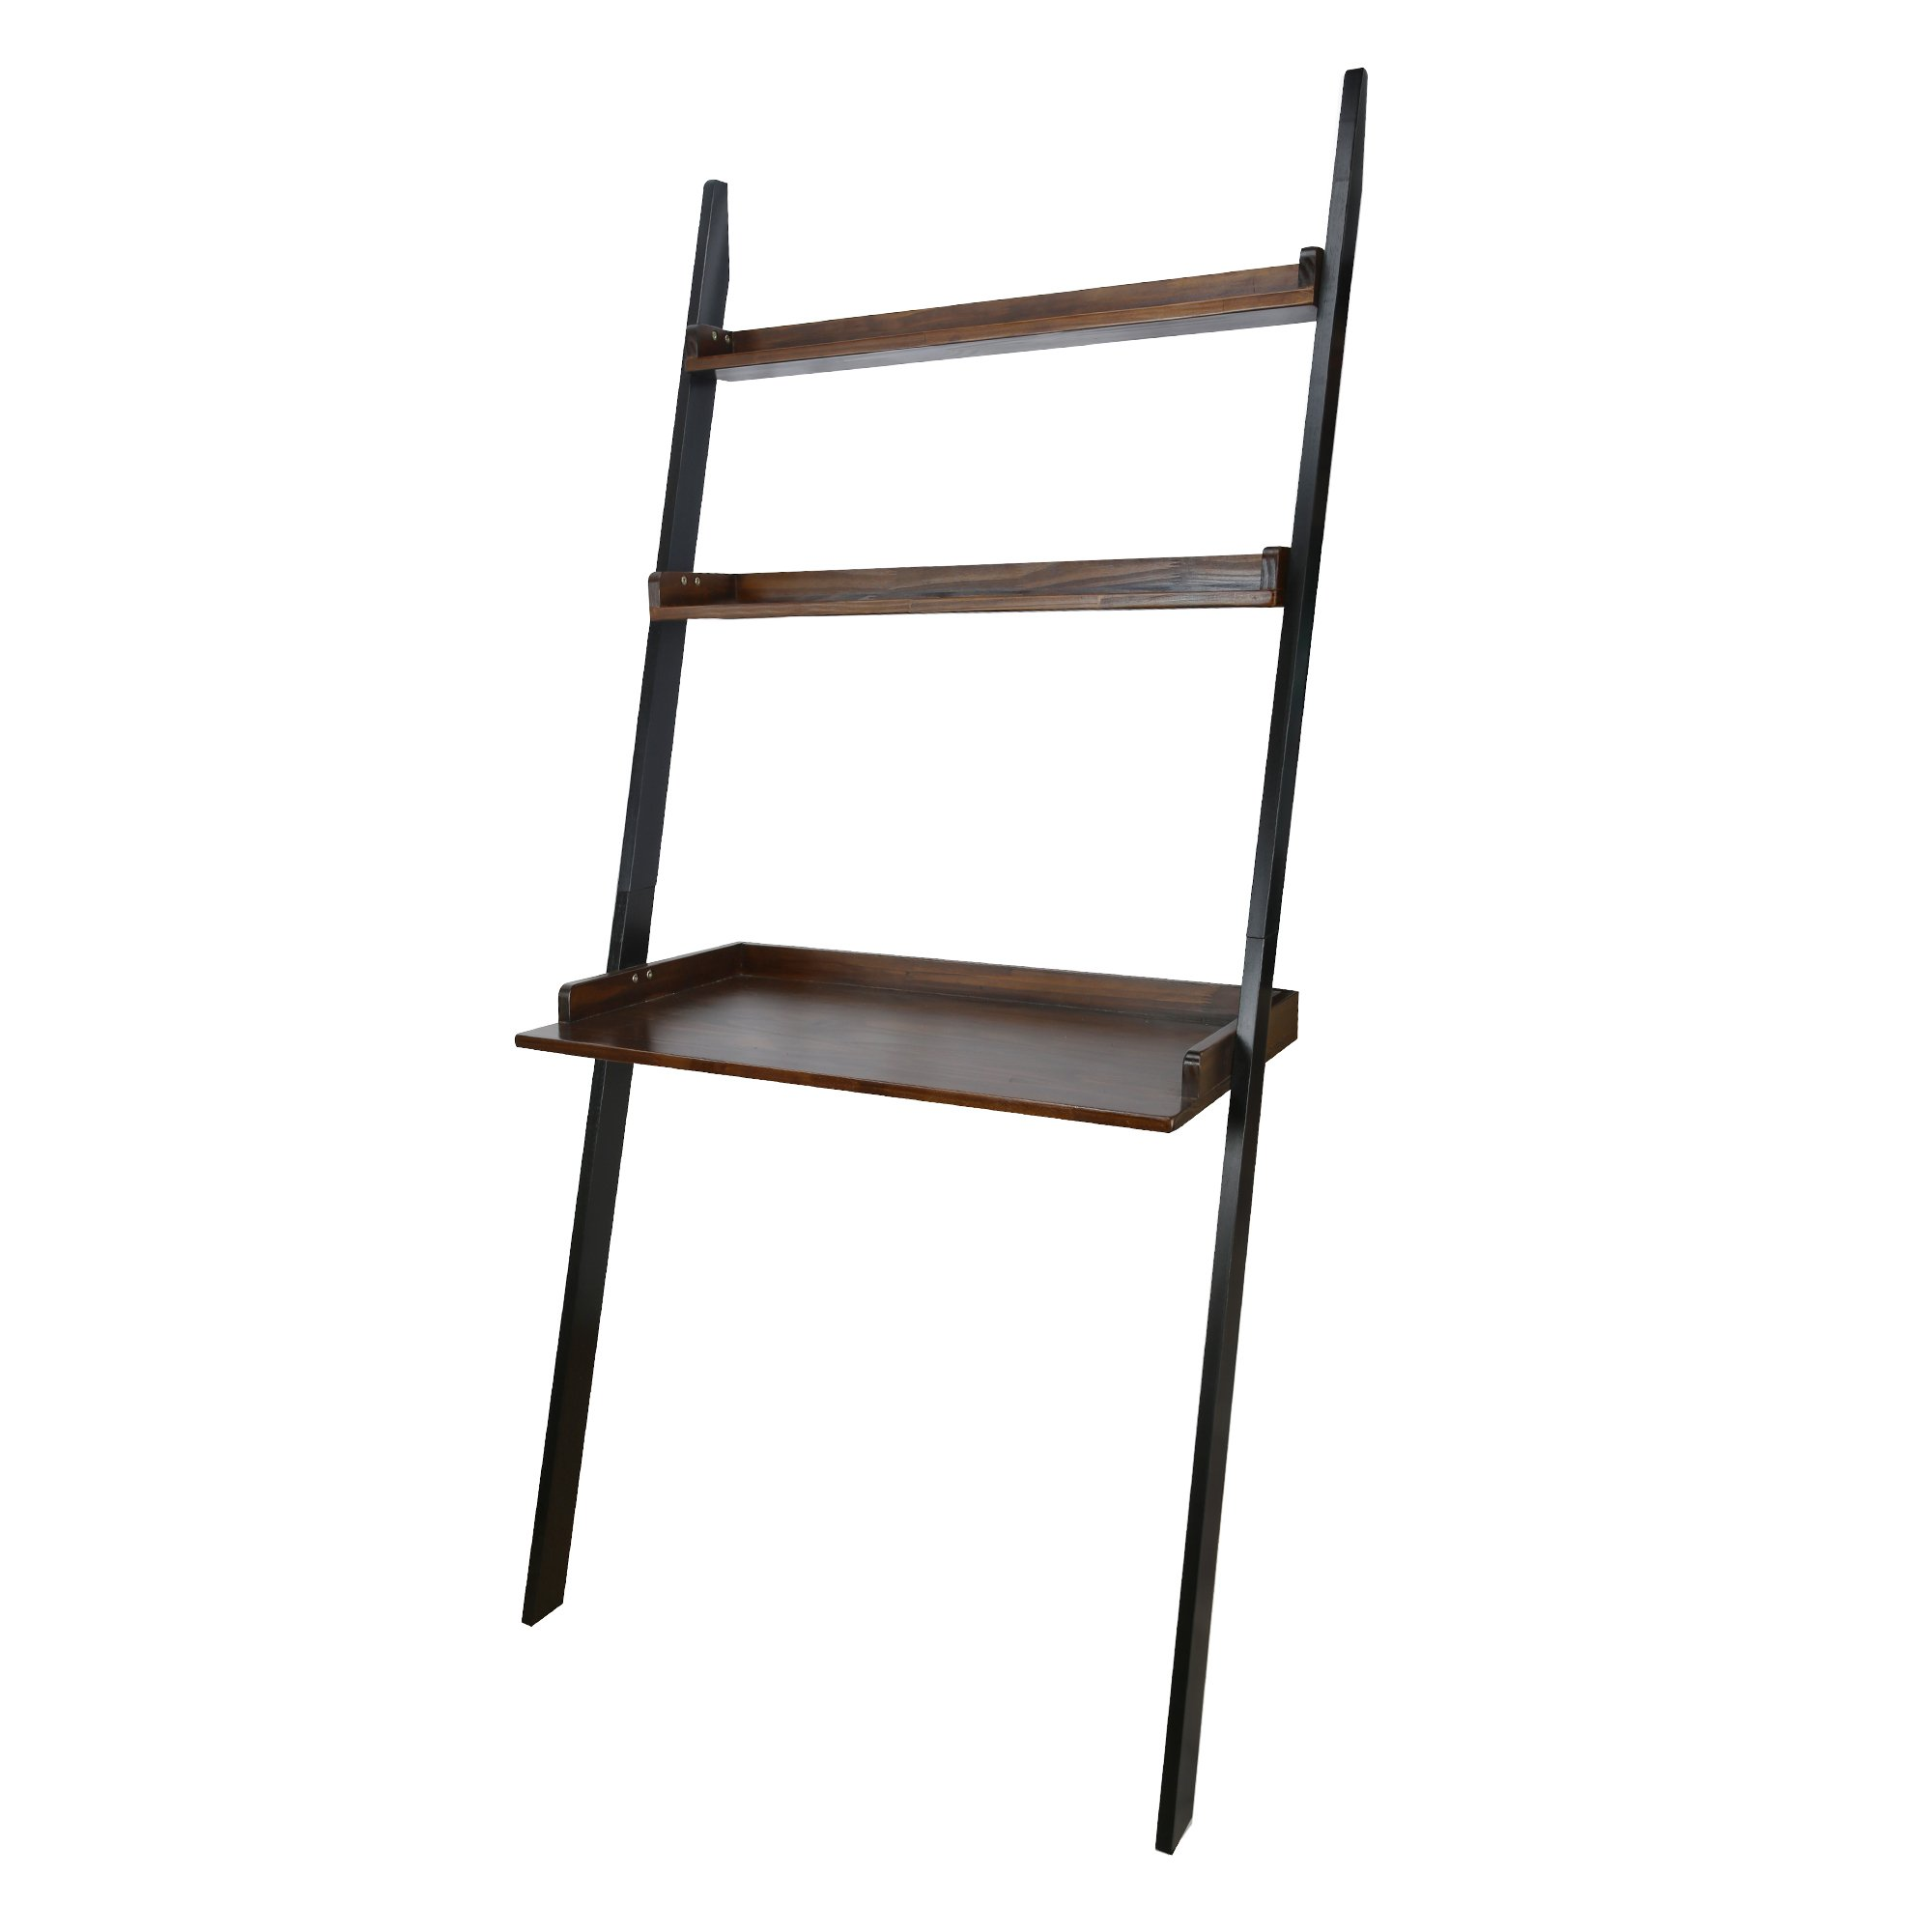 Casual Home 317-17 SoHo Leaning Bookcase, Two-Tone (Mocha, Black) by Casual Home